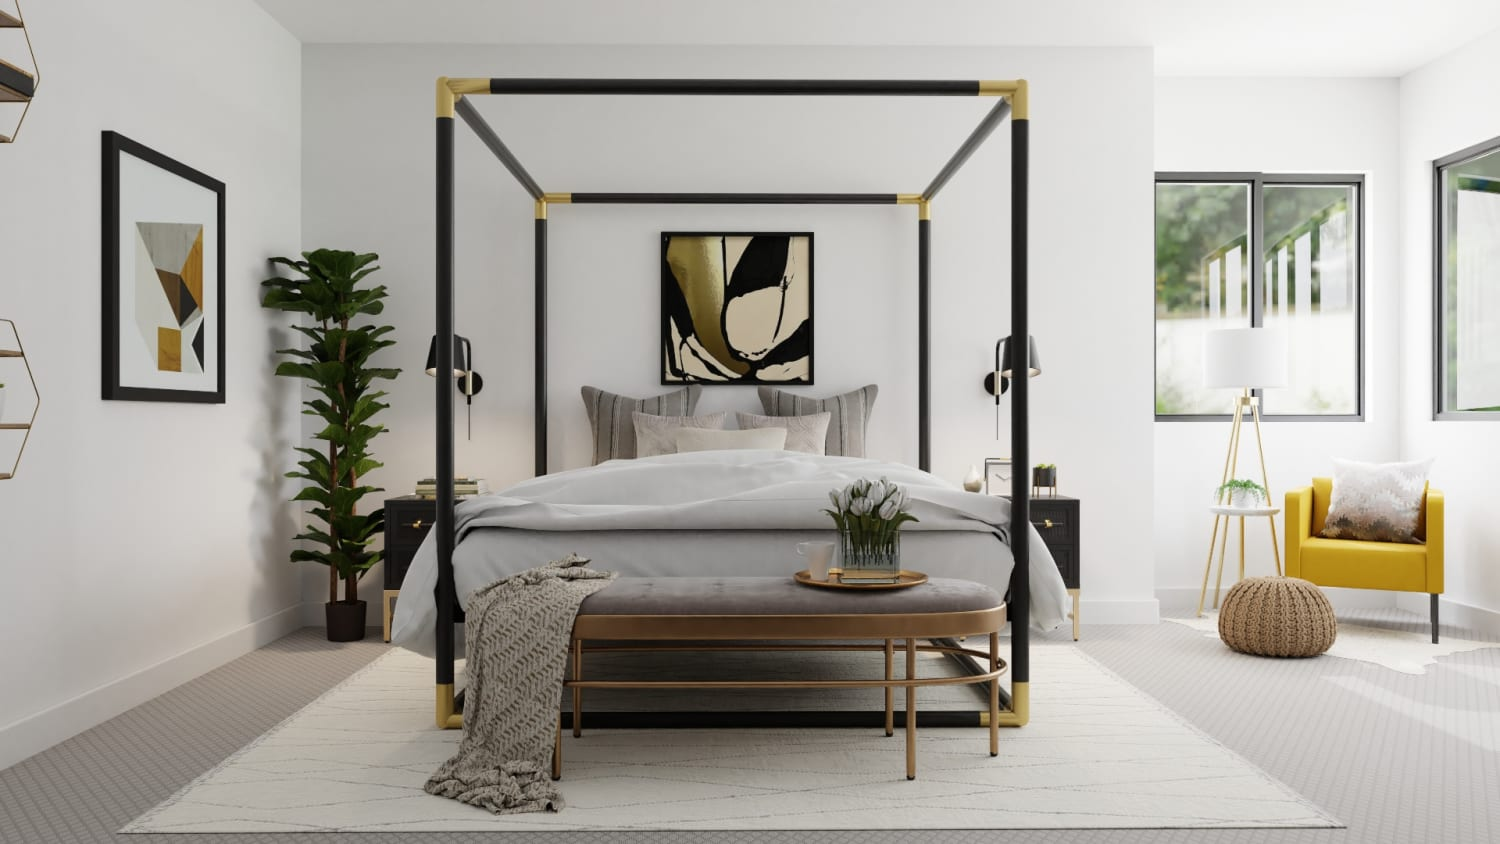 Statement Canopy Bed: Modern Glam Bedroom Design By Spacejoy